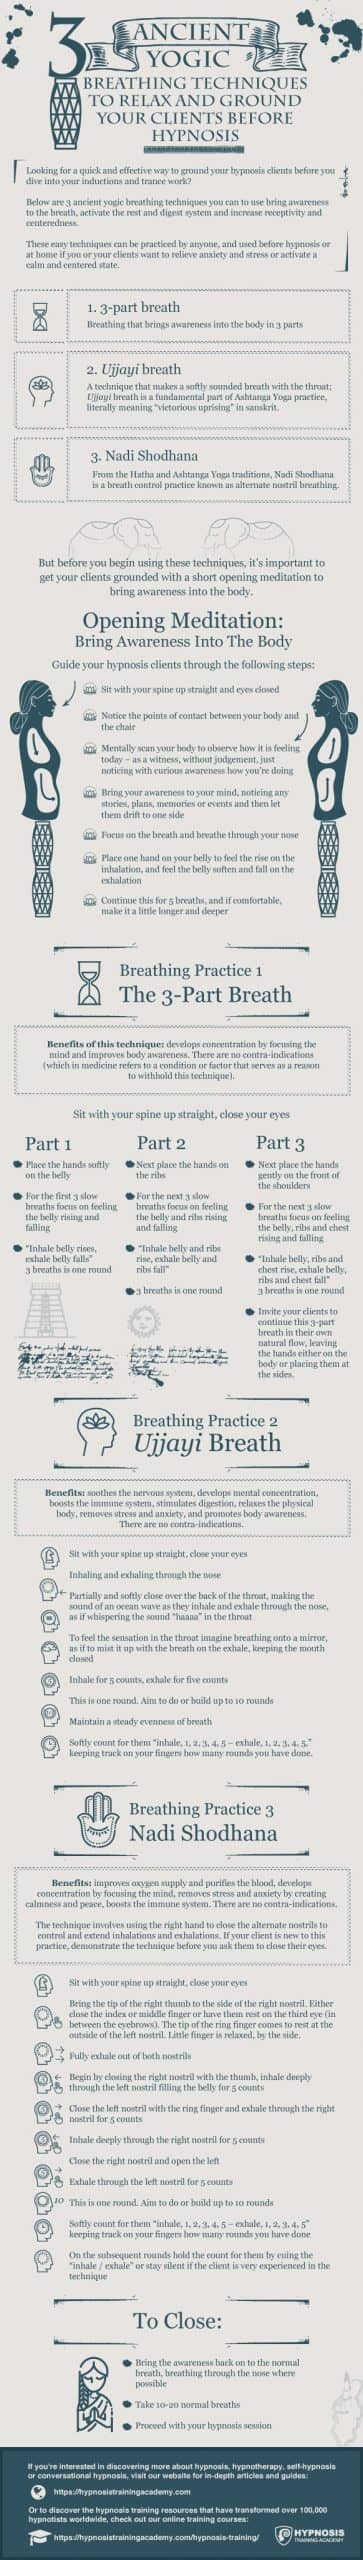 [INFOGRAPHIC] Yogic Breathing For Hypnosis: 3 Easy Techniques To Ground & Relax Your Clients Before Inducing A Hypnotic Trance